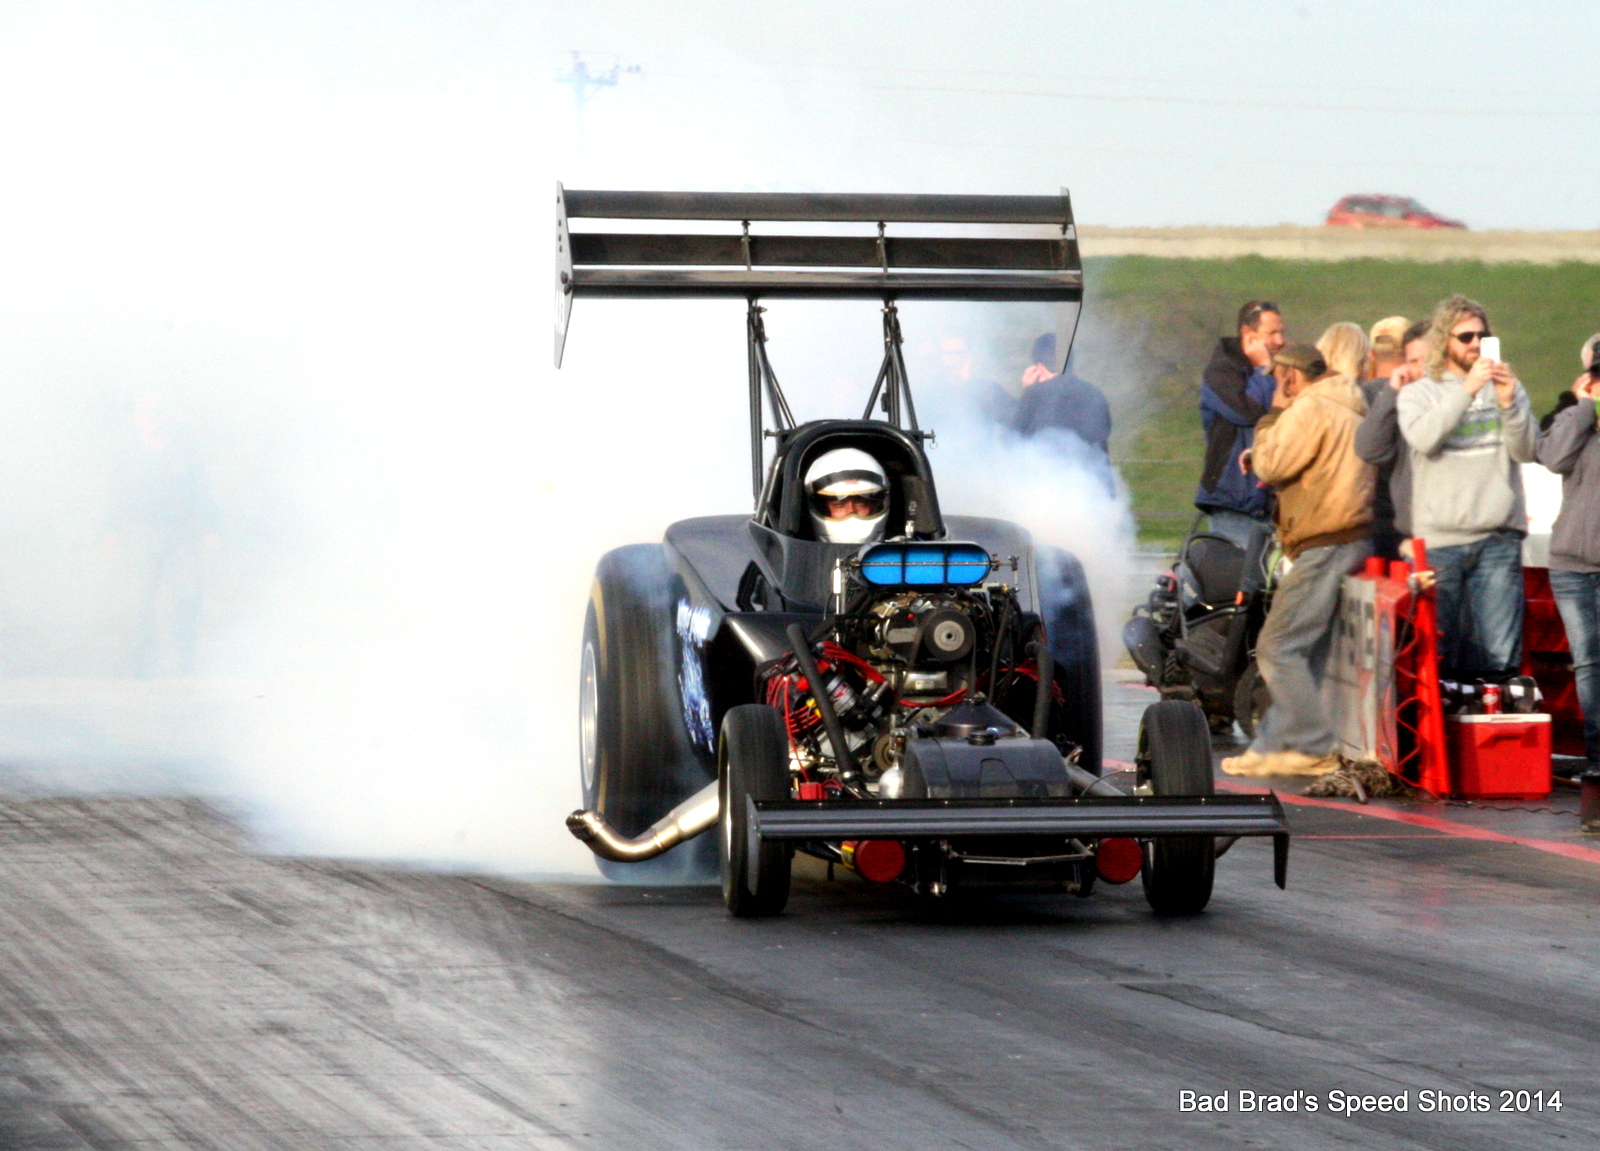 Outlaw Fuel Altered Association Photos – More Action From North Star Dragway In Texas